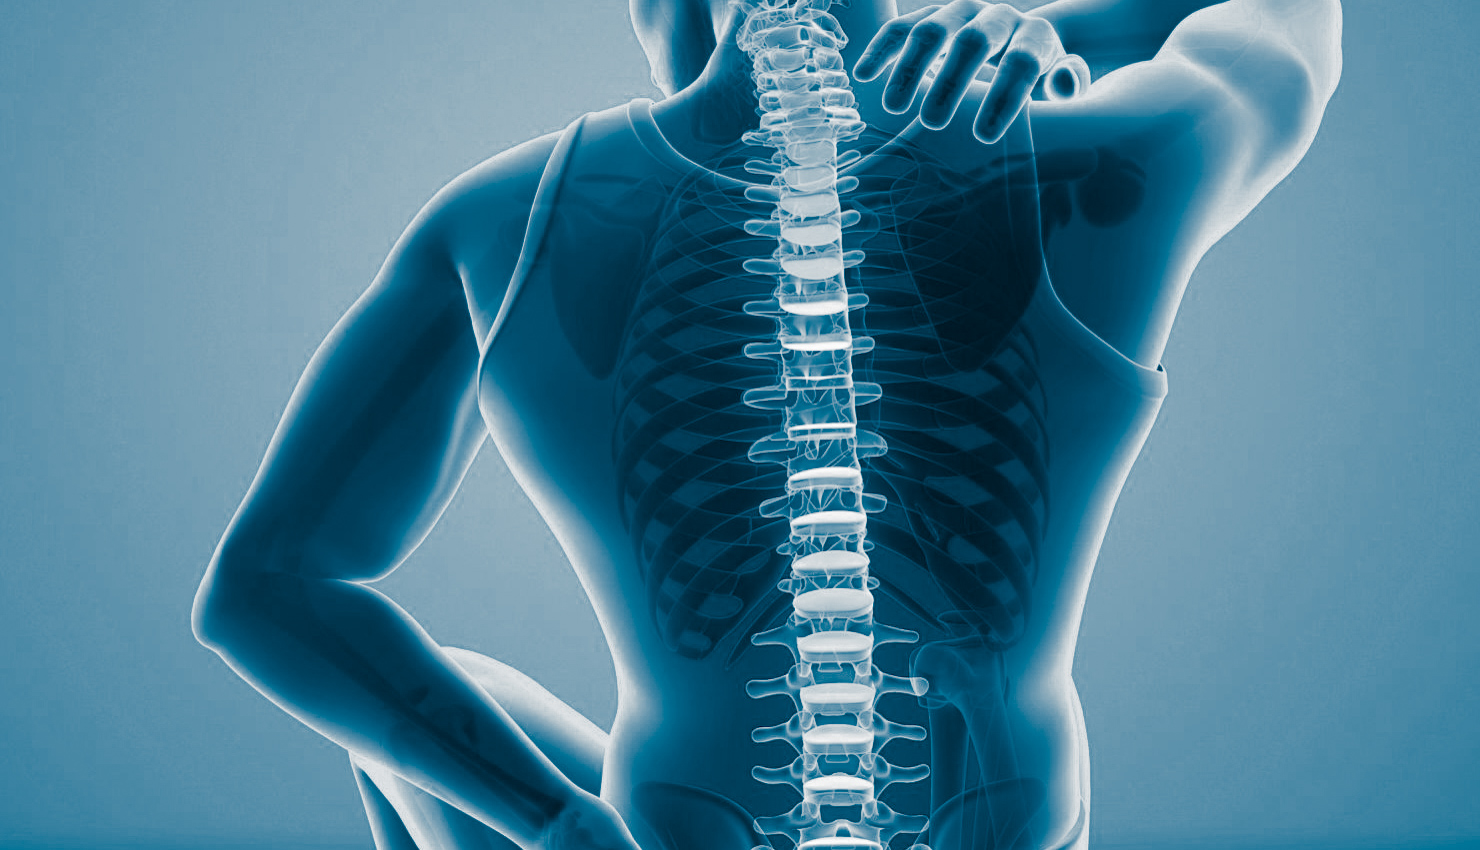 Man with back pain, computer illustration.